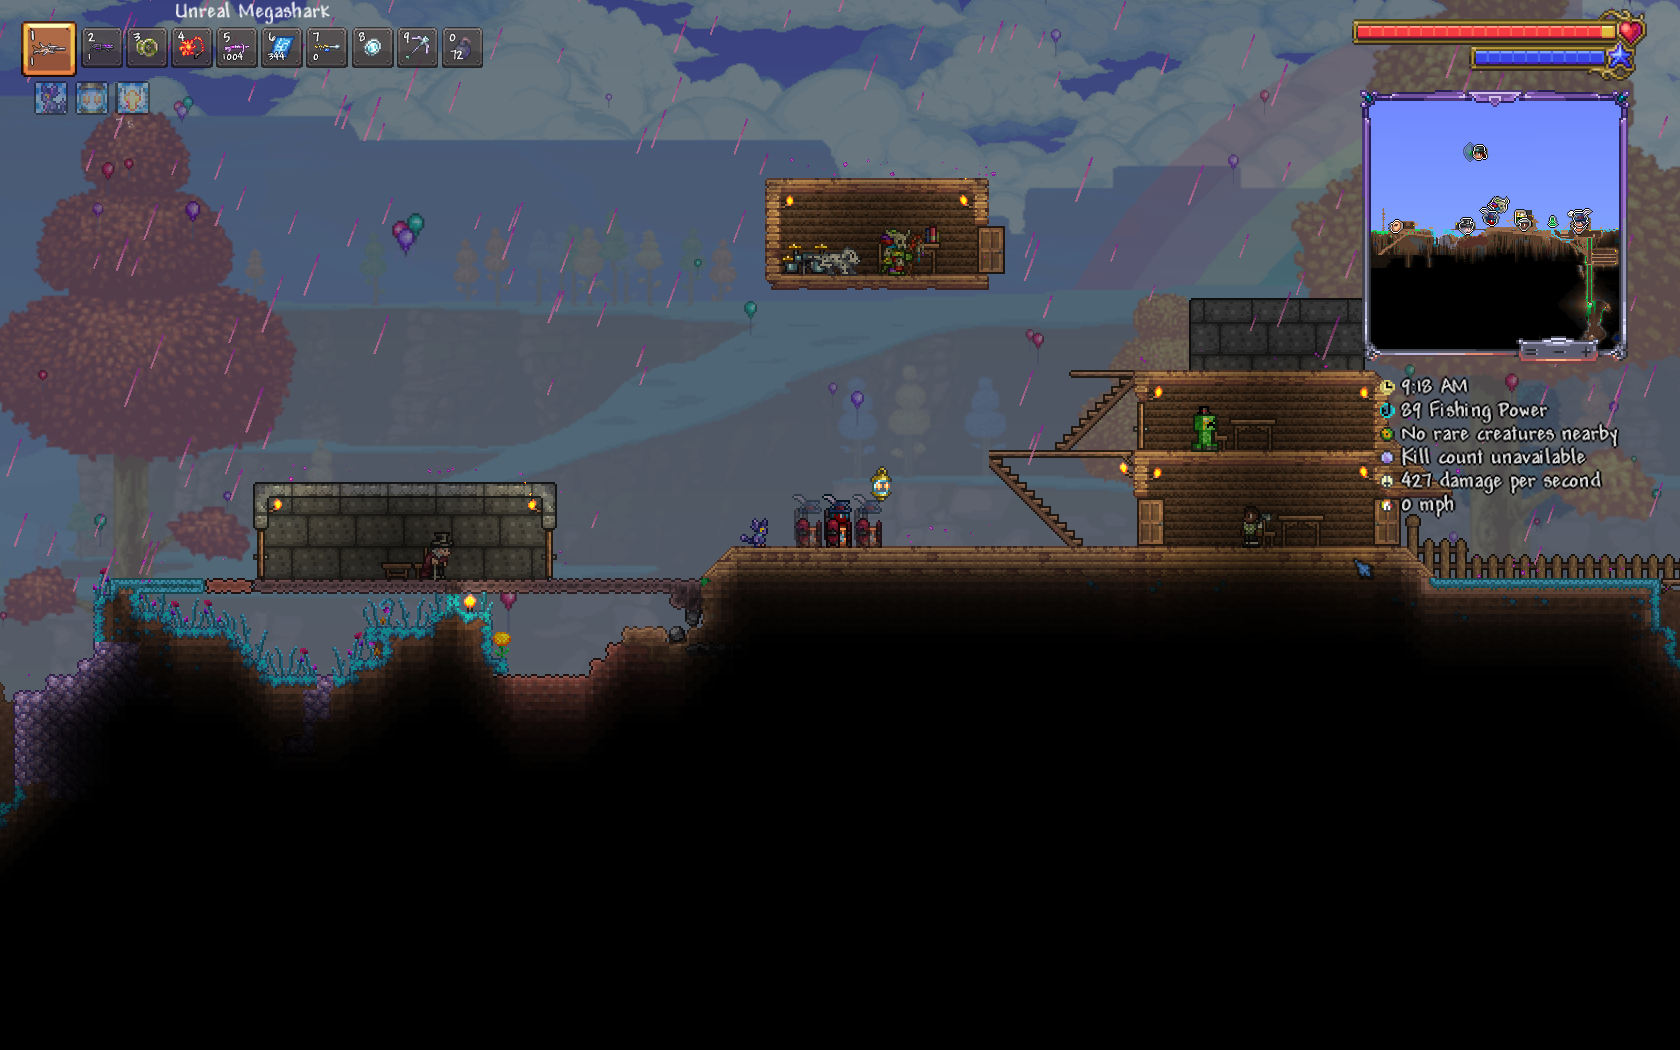 Terraria_ Sand is Overpowered 9_15_2021 2_44_07 PM.png